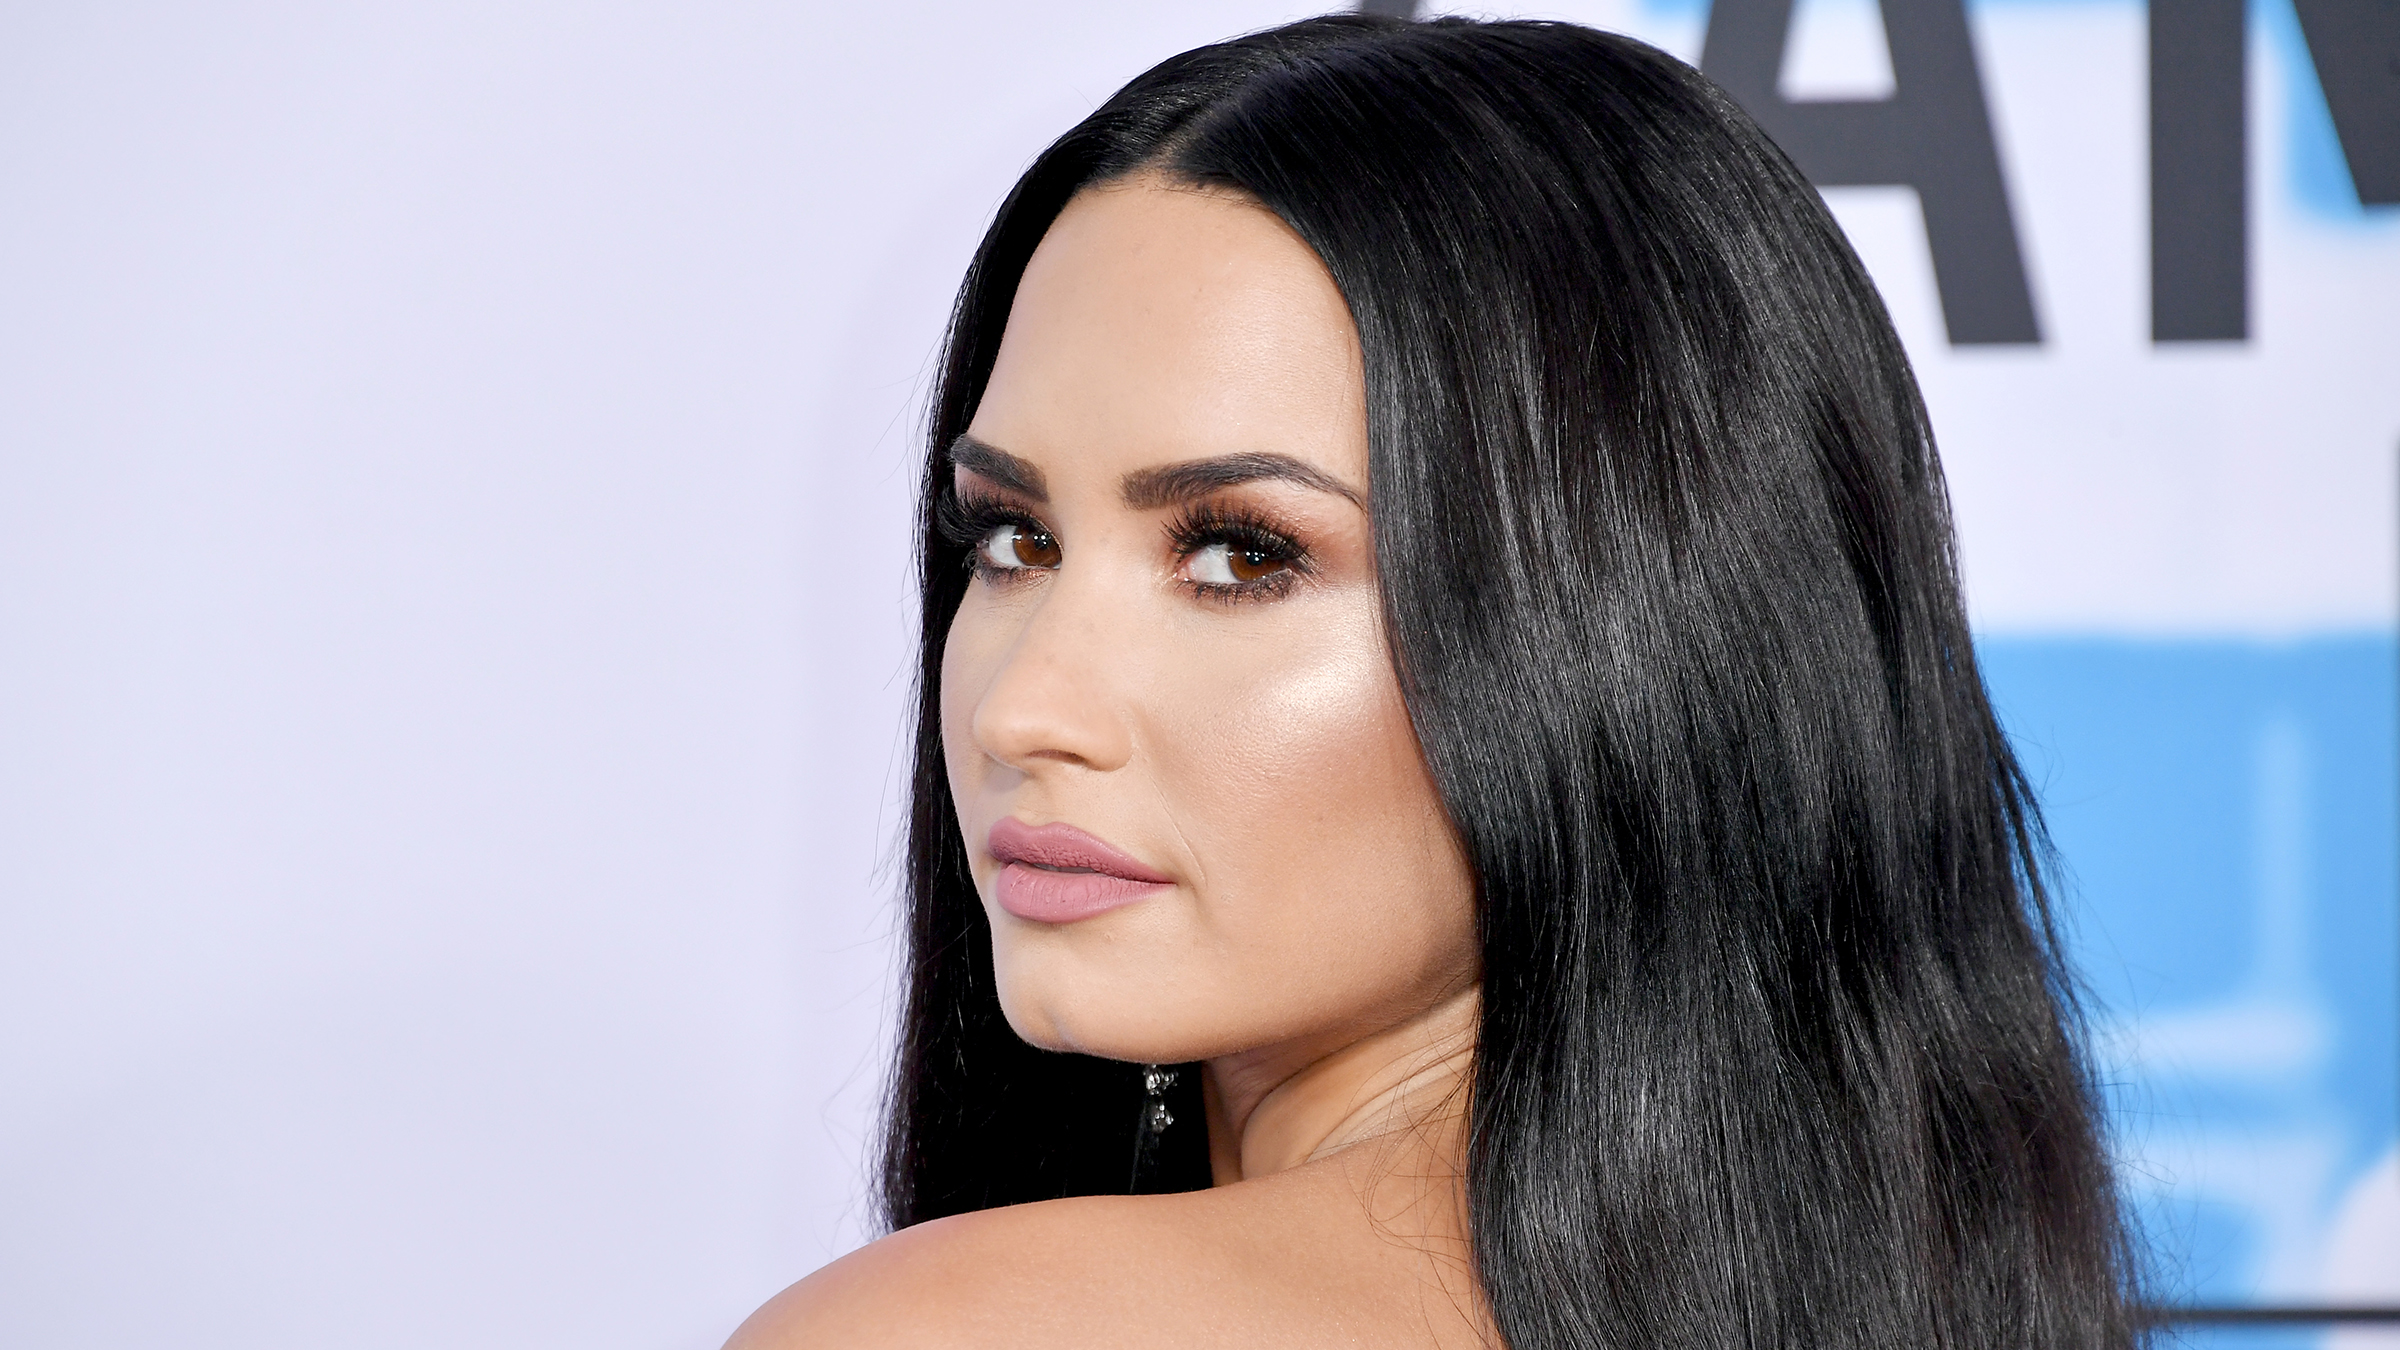 Demi Lovato attends the 2017 American Music Awards at Microsoft Theater on November 19, 2017 in Los Angeles, California. (Photo by Neilson Barnard/Getty Images)